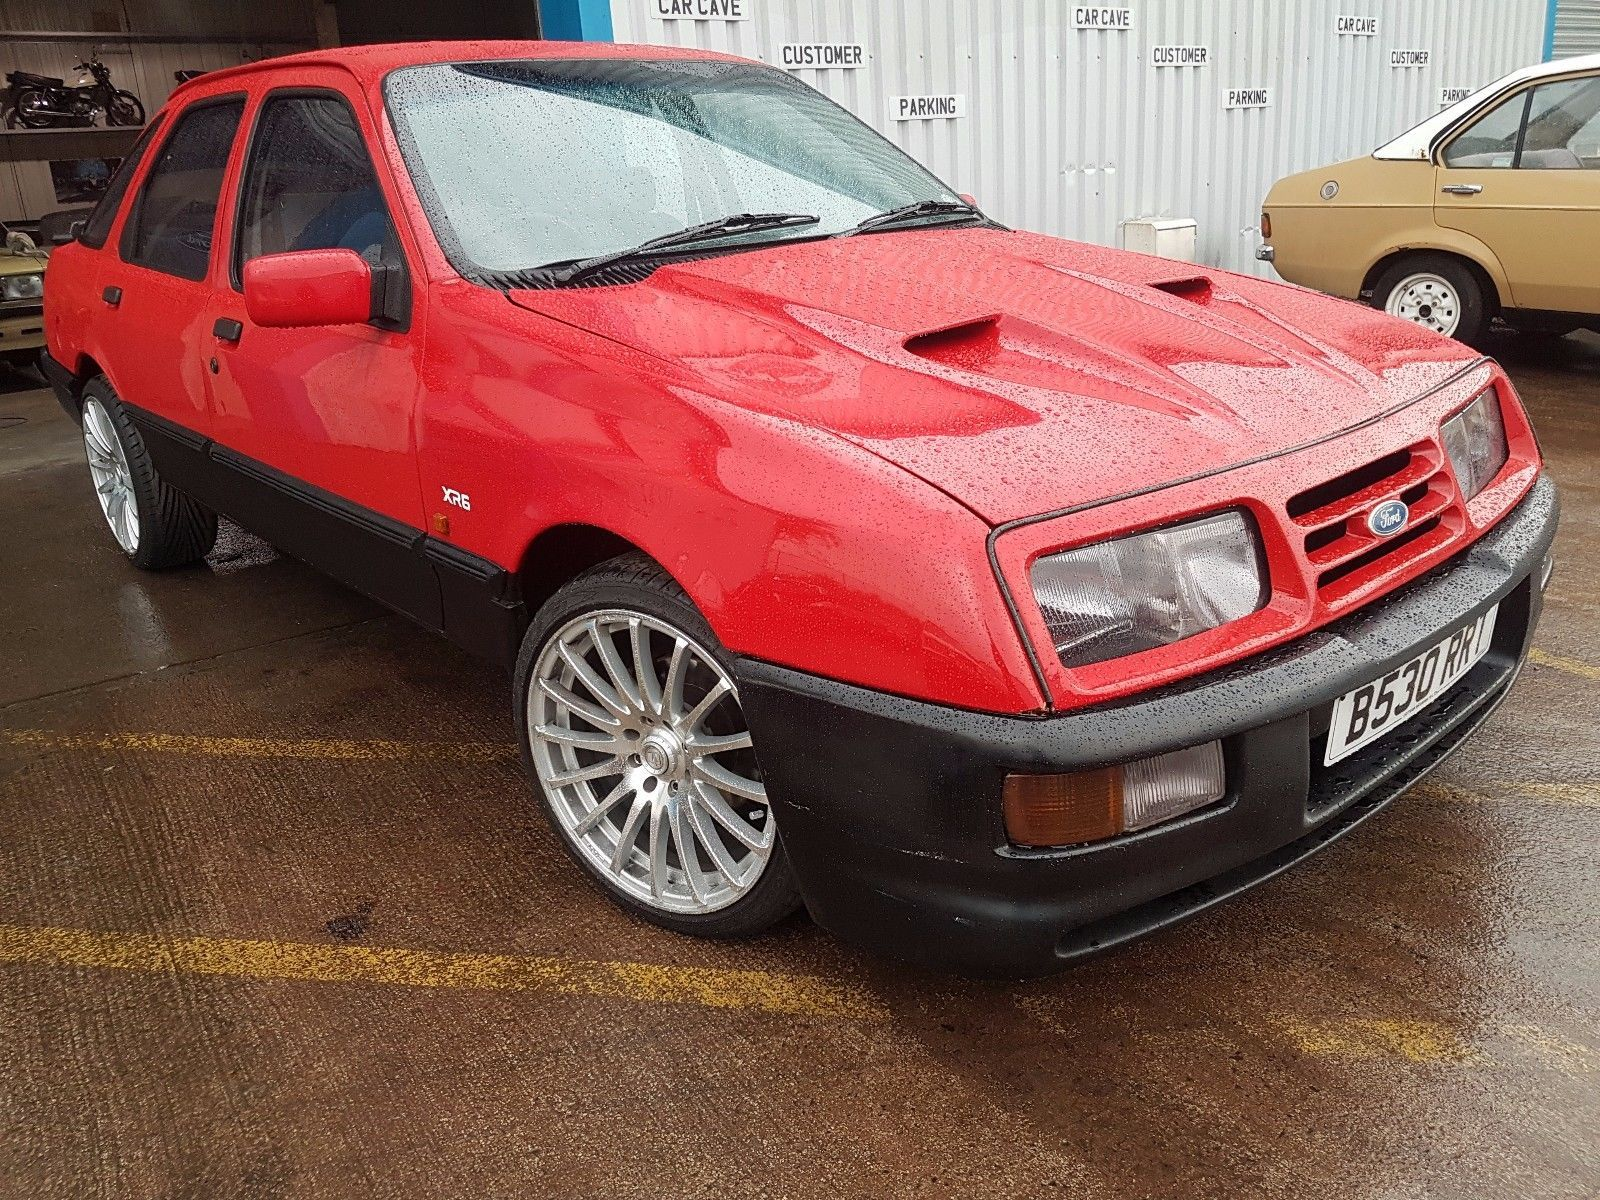 1985 Ford Sierra 3 0 Xr6 Uk Registered Very Good Condition